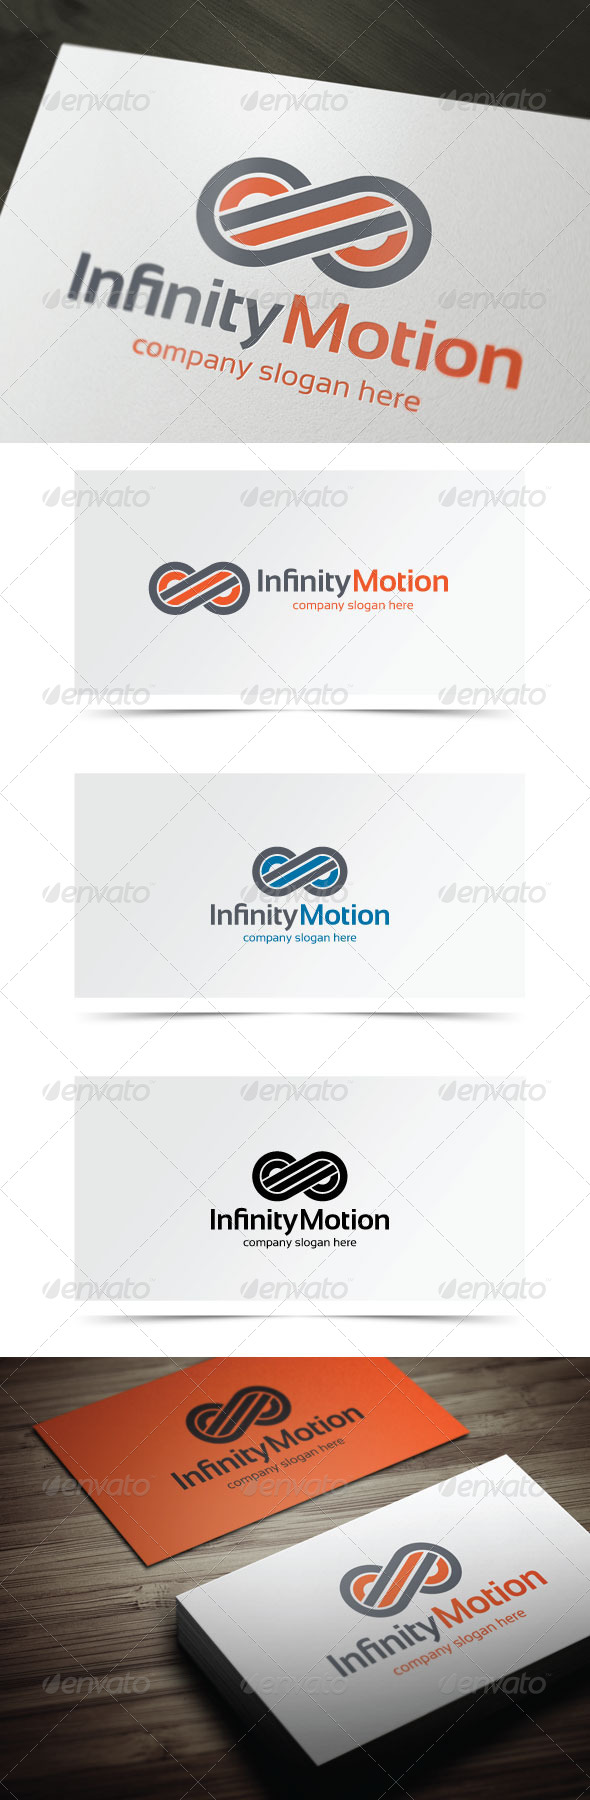 GraphicRiver Infinity Motion 6913888